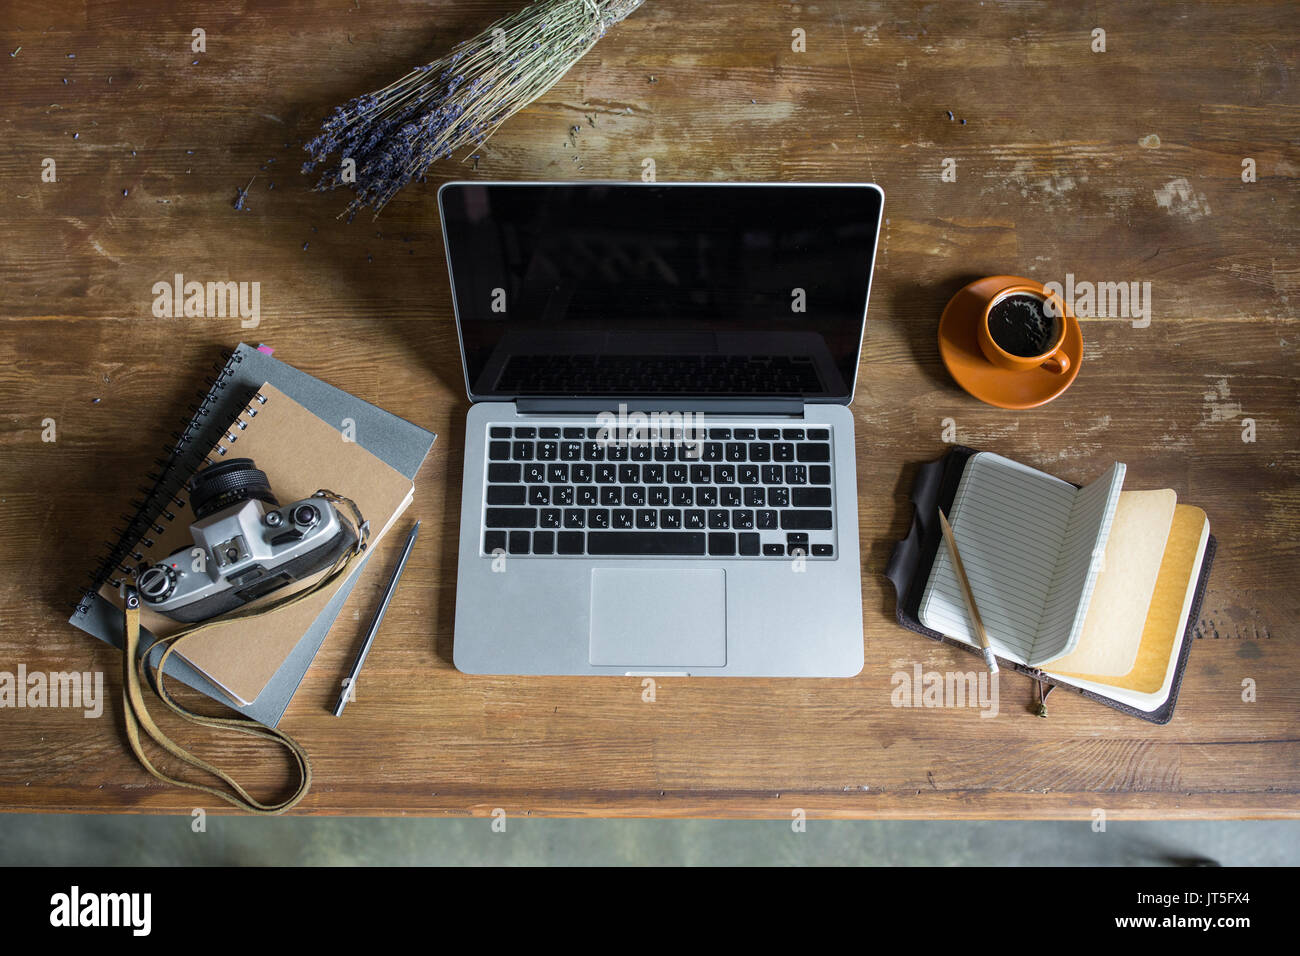 top view of laptop, diaries, vintage photo camera and cup of coffee on wooden tabletop - Stock Image